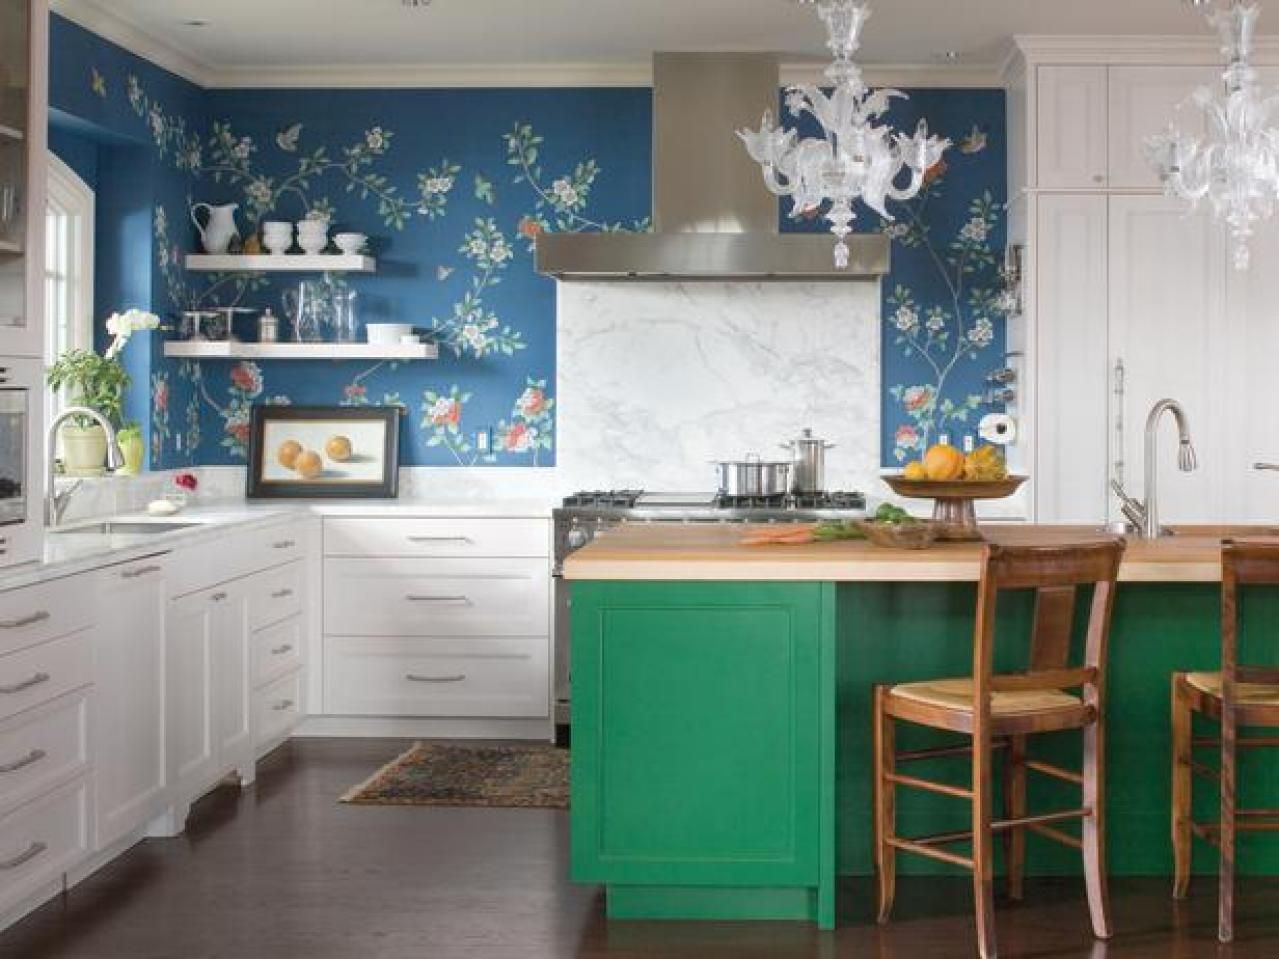 25 Tips For Painting Kitchen Cabinets Diy Network Blog Made Eclectic Kitchen Contemporary Kitchen Kitchen Remodel